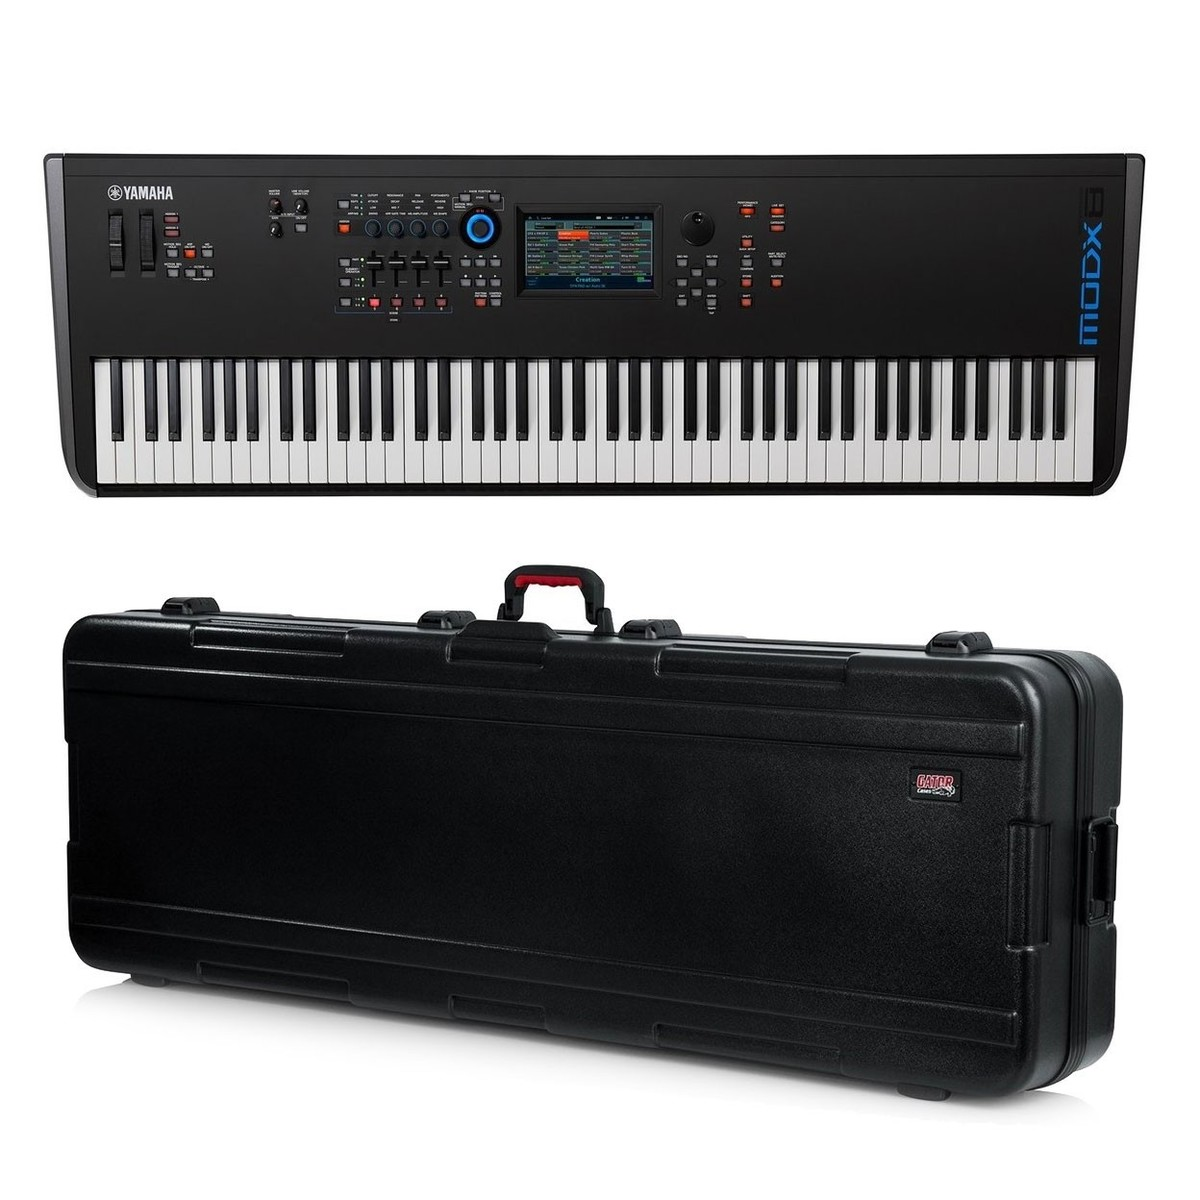 yamaha modx8 synthesizer keyboard with gator hard case at gear4music. Black Bedroom Furniture Sets. Home Design Ideas